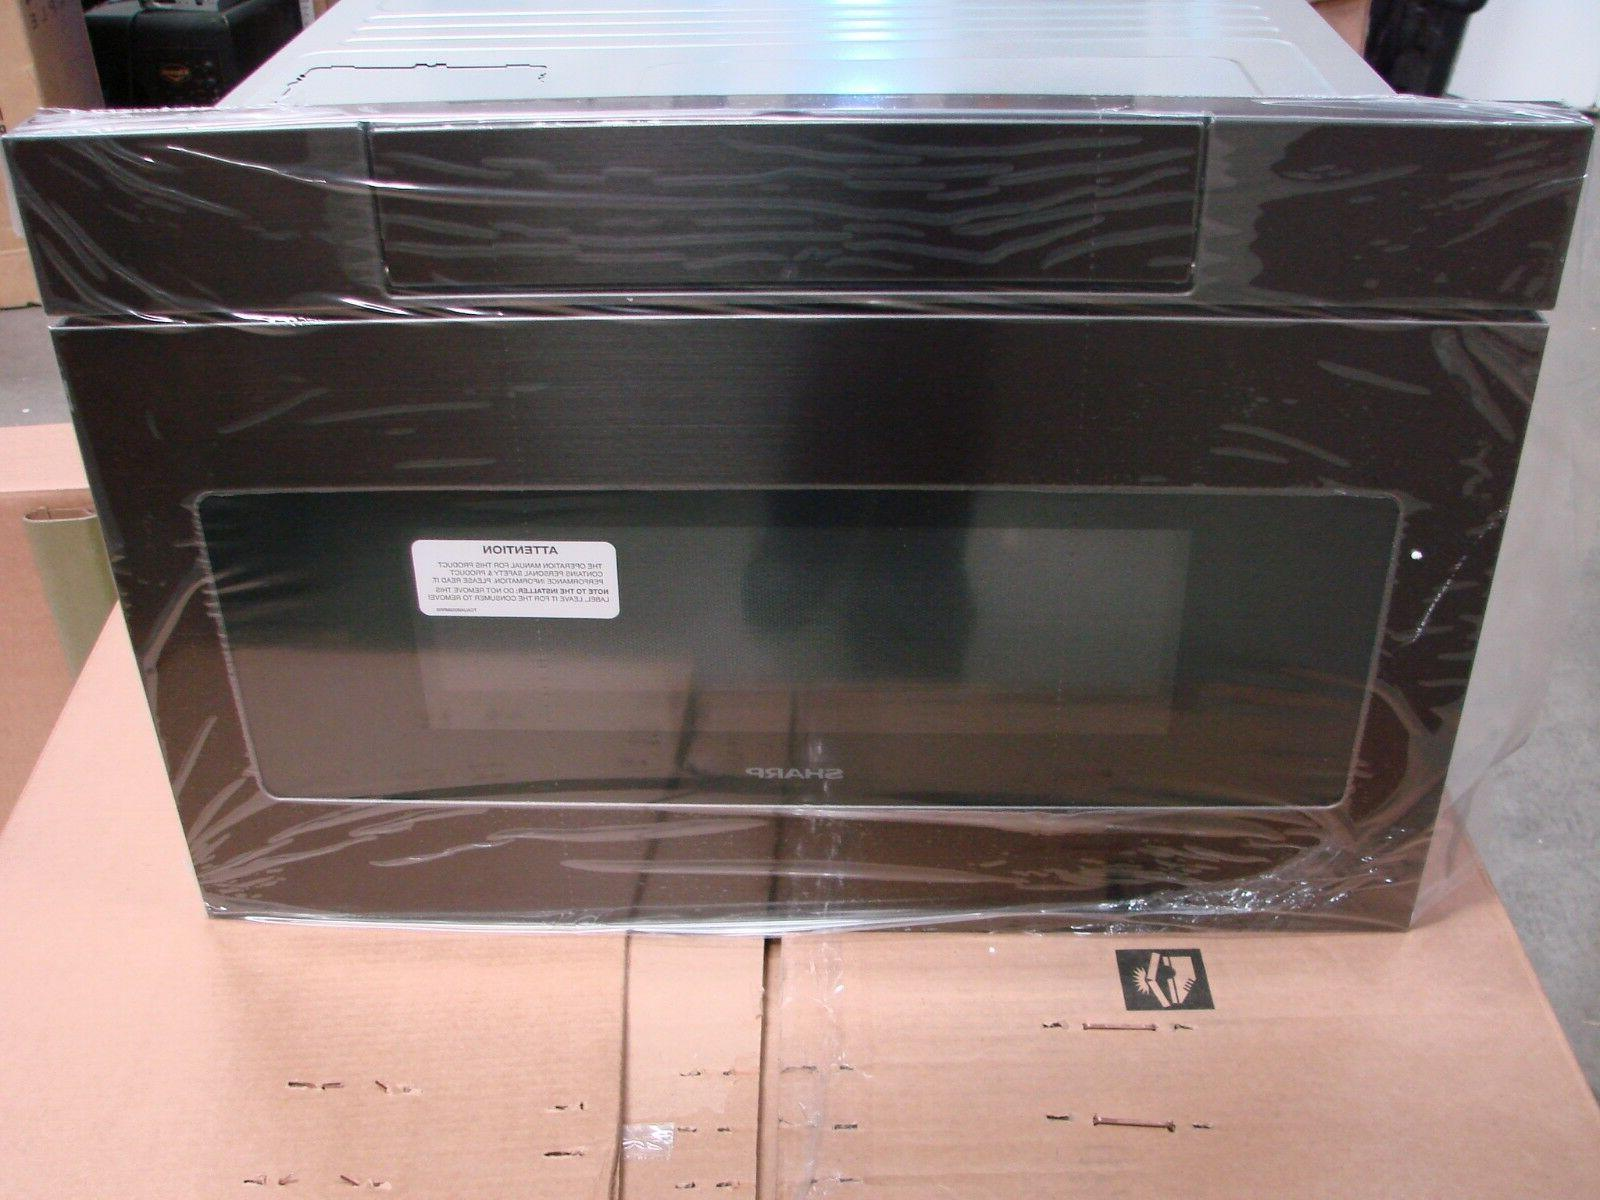 smd2470ah microwave drawer